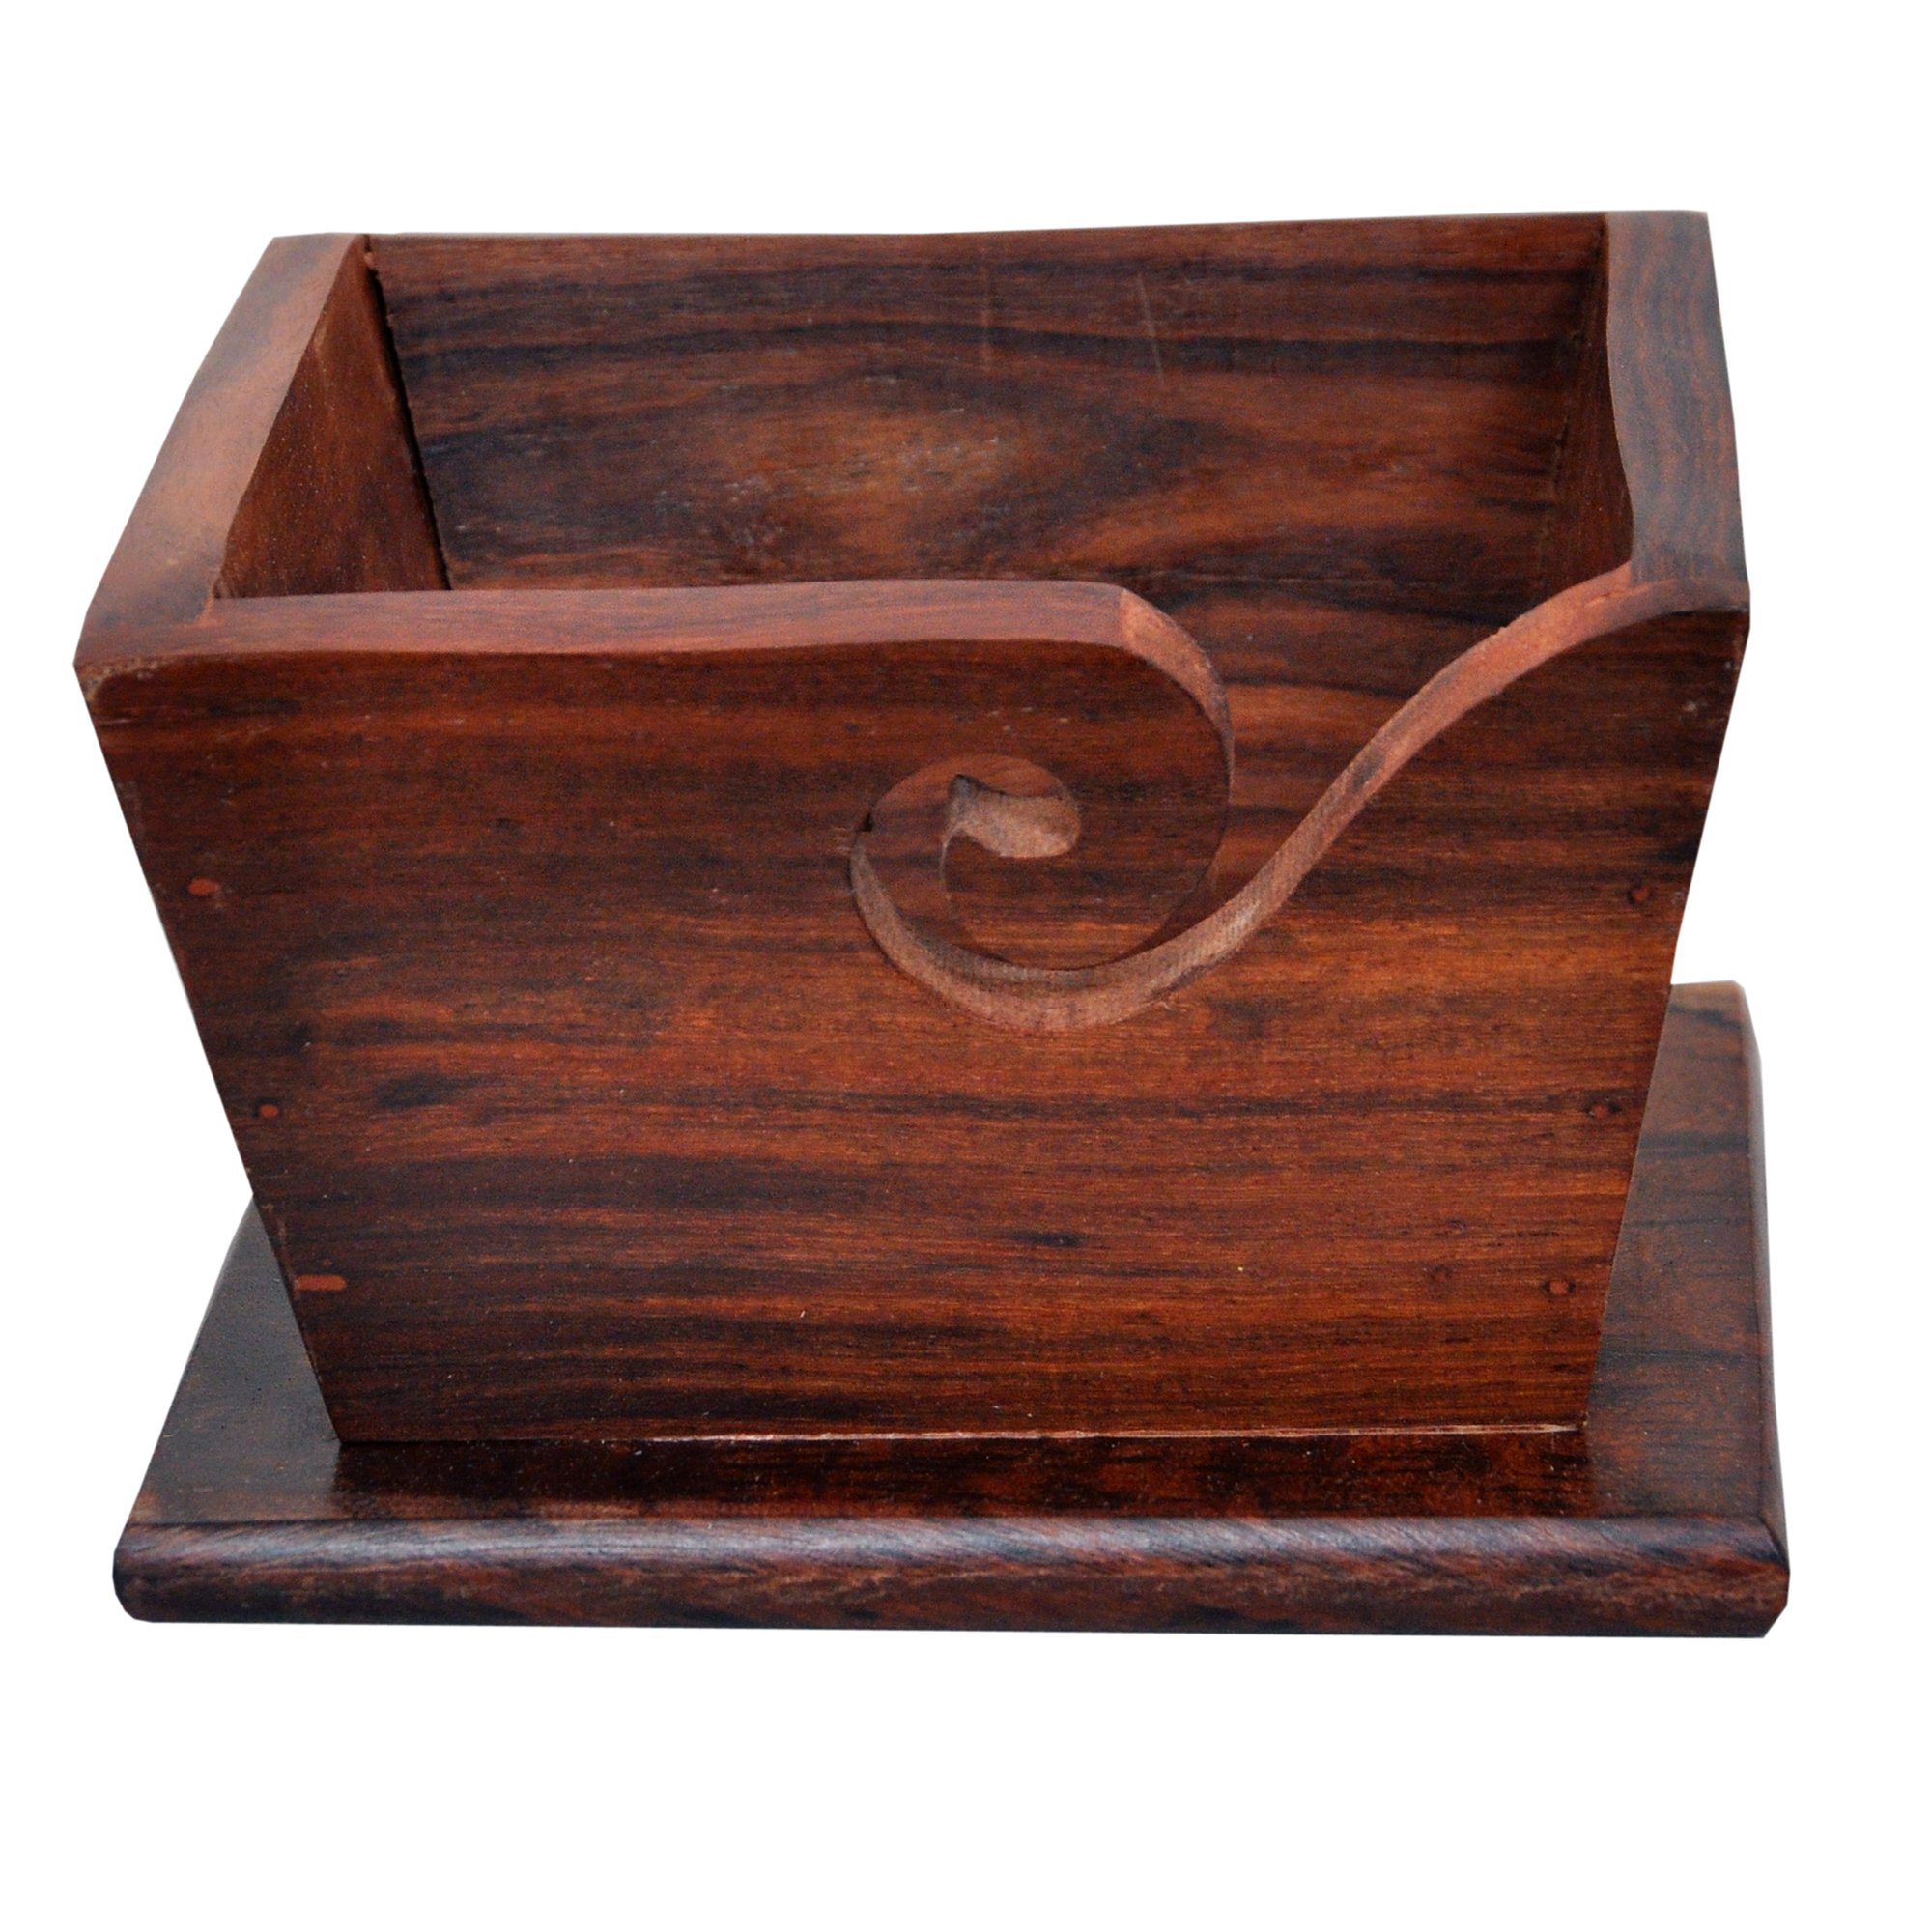 KITCHEN SUPPLIER Wooden Yarn Holder Hand Made with Rosewood for Knitting and Crochet- Stylish Square- Mother's Day Collection 2019